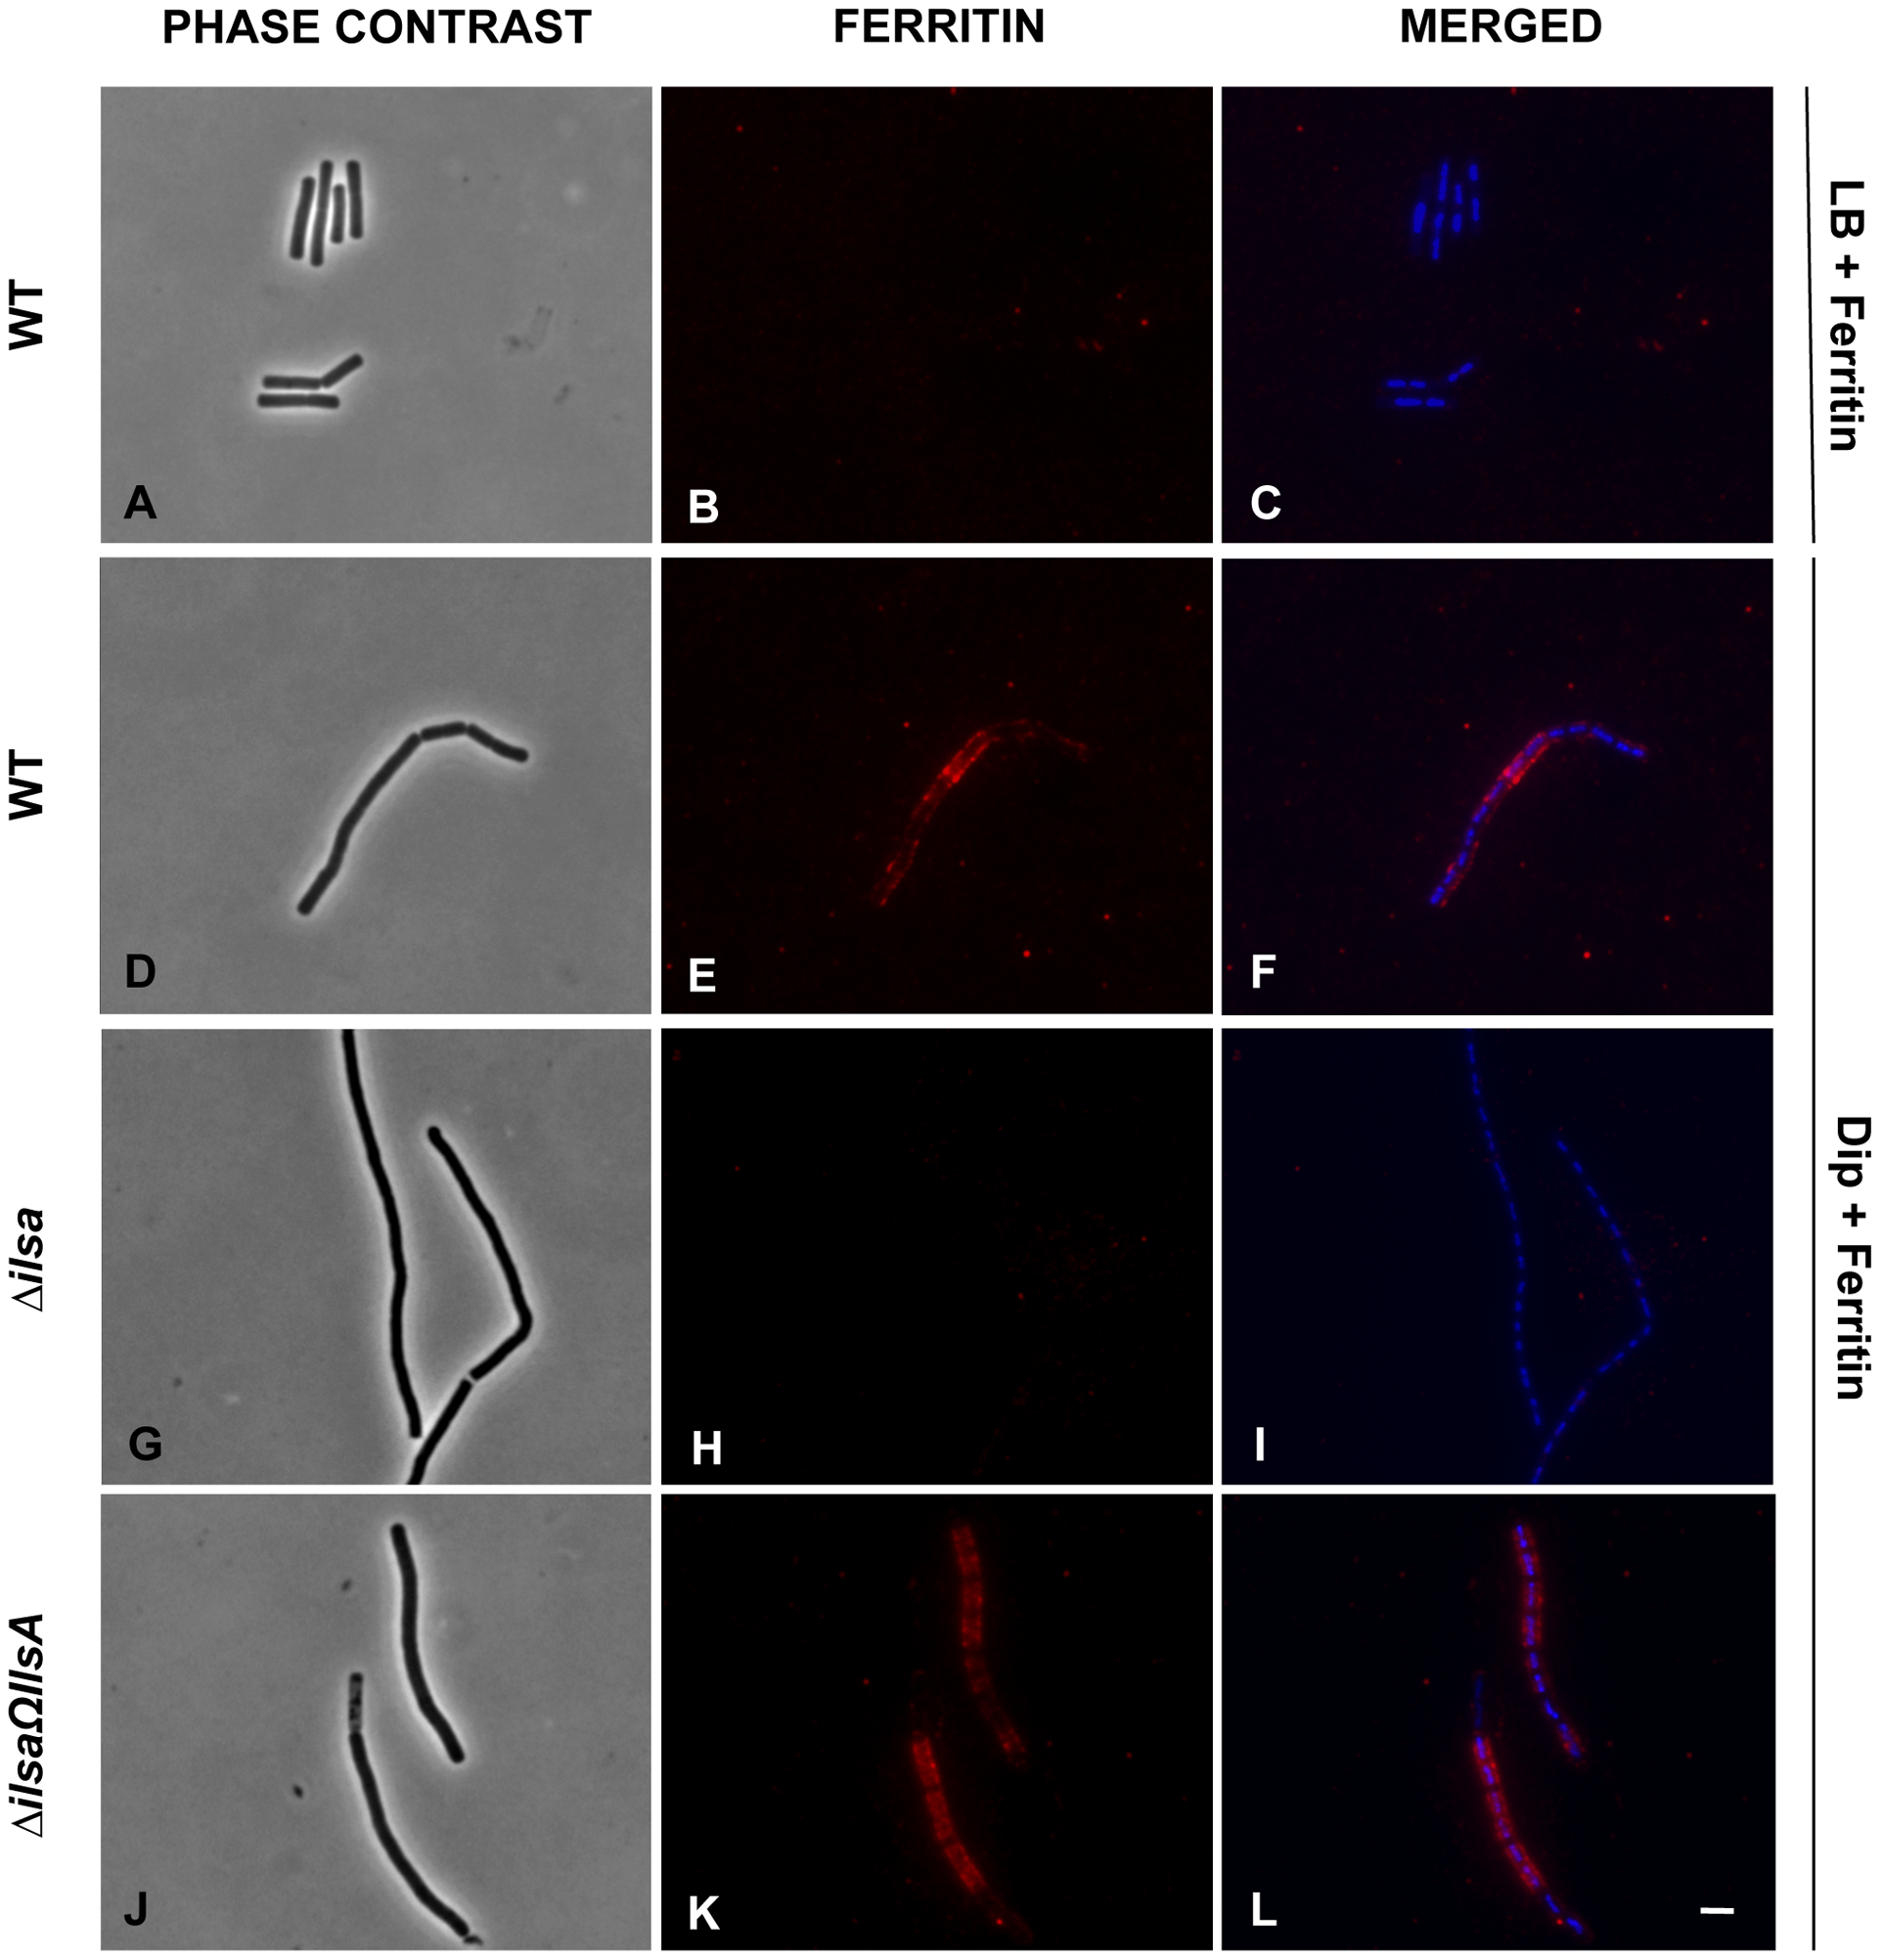 IlsA is essential for ferritin binding on <i>B. cereus</i> cell surface.